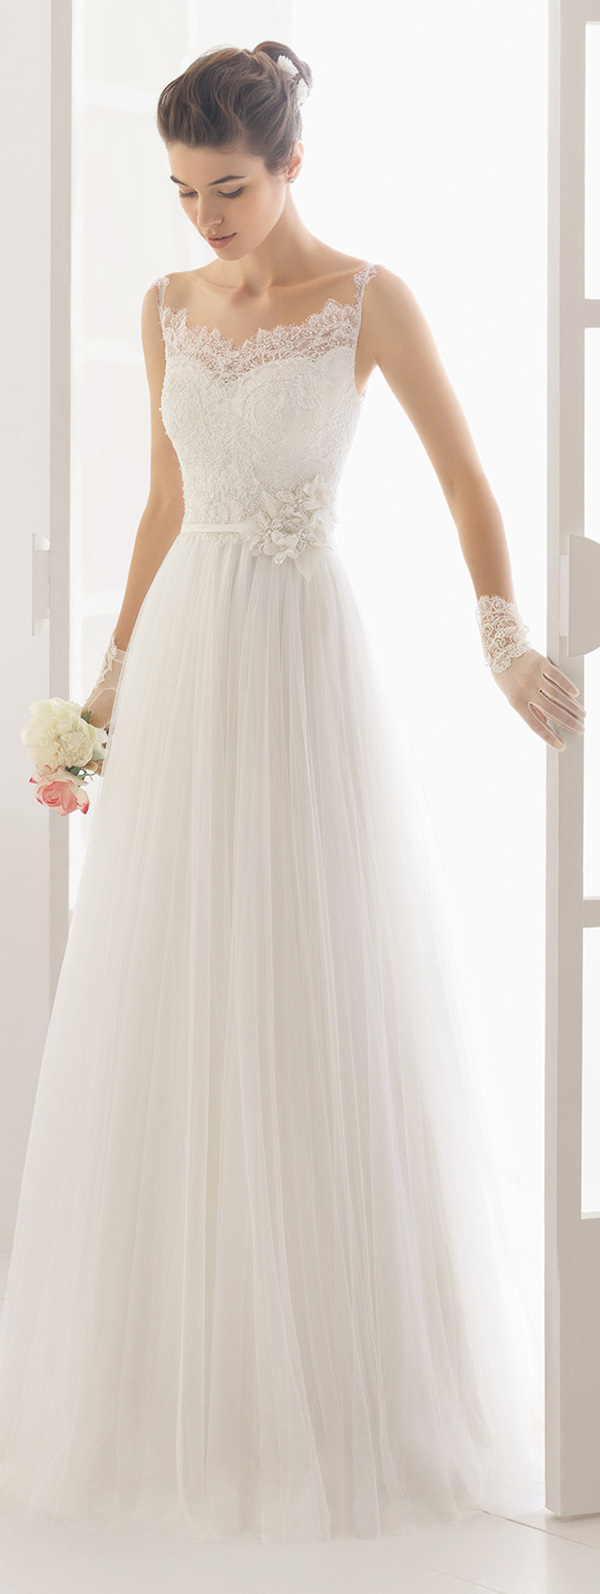 Aire barcelona wedding dresses 2016 collection for Wedding dresses for tall skinny brides